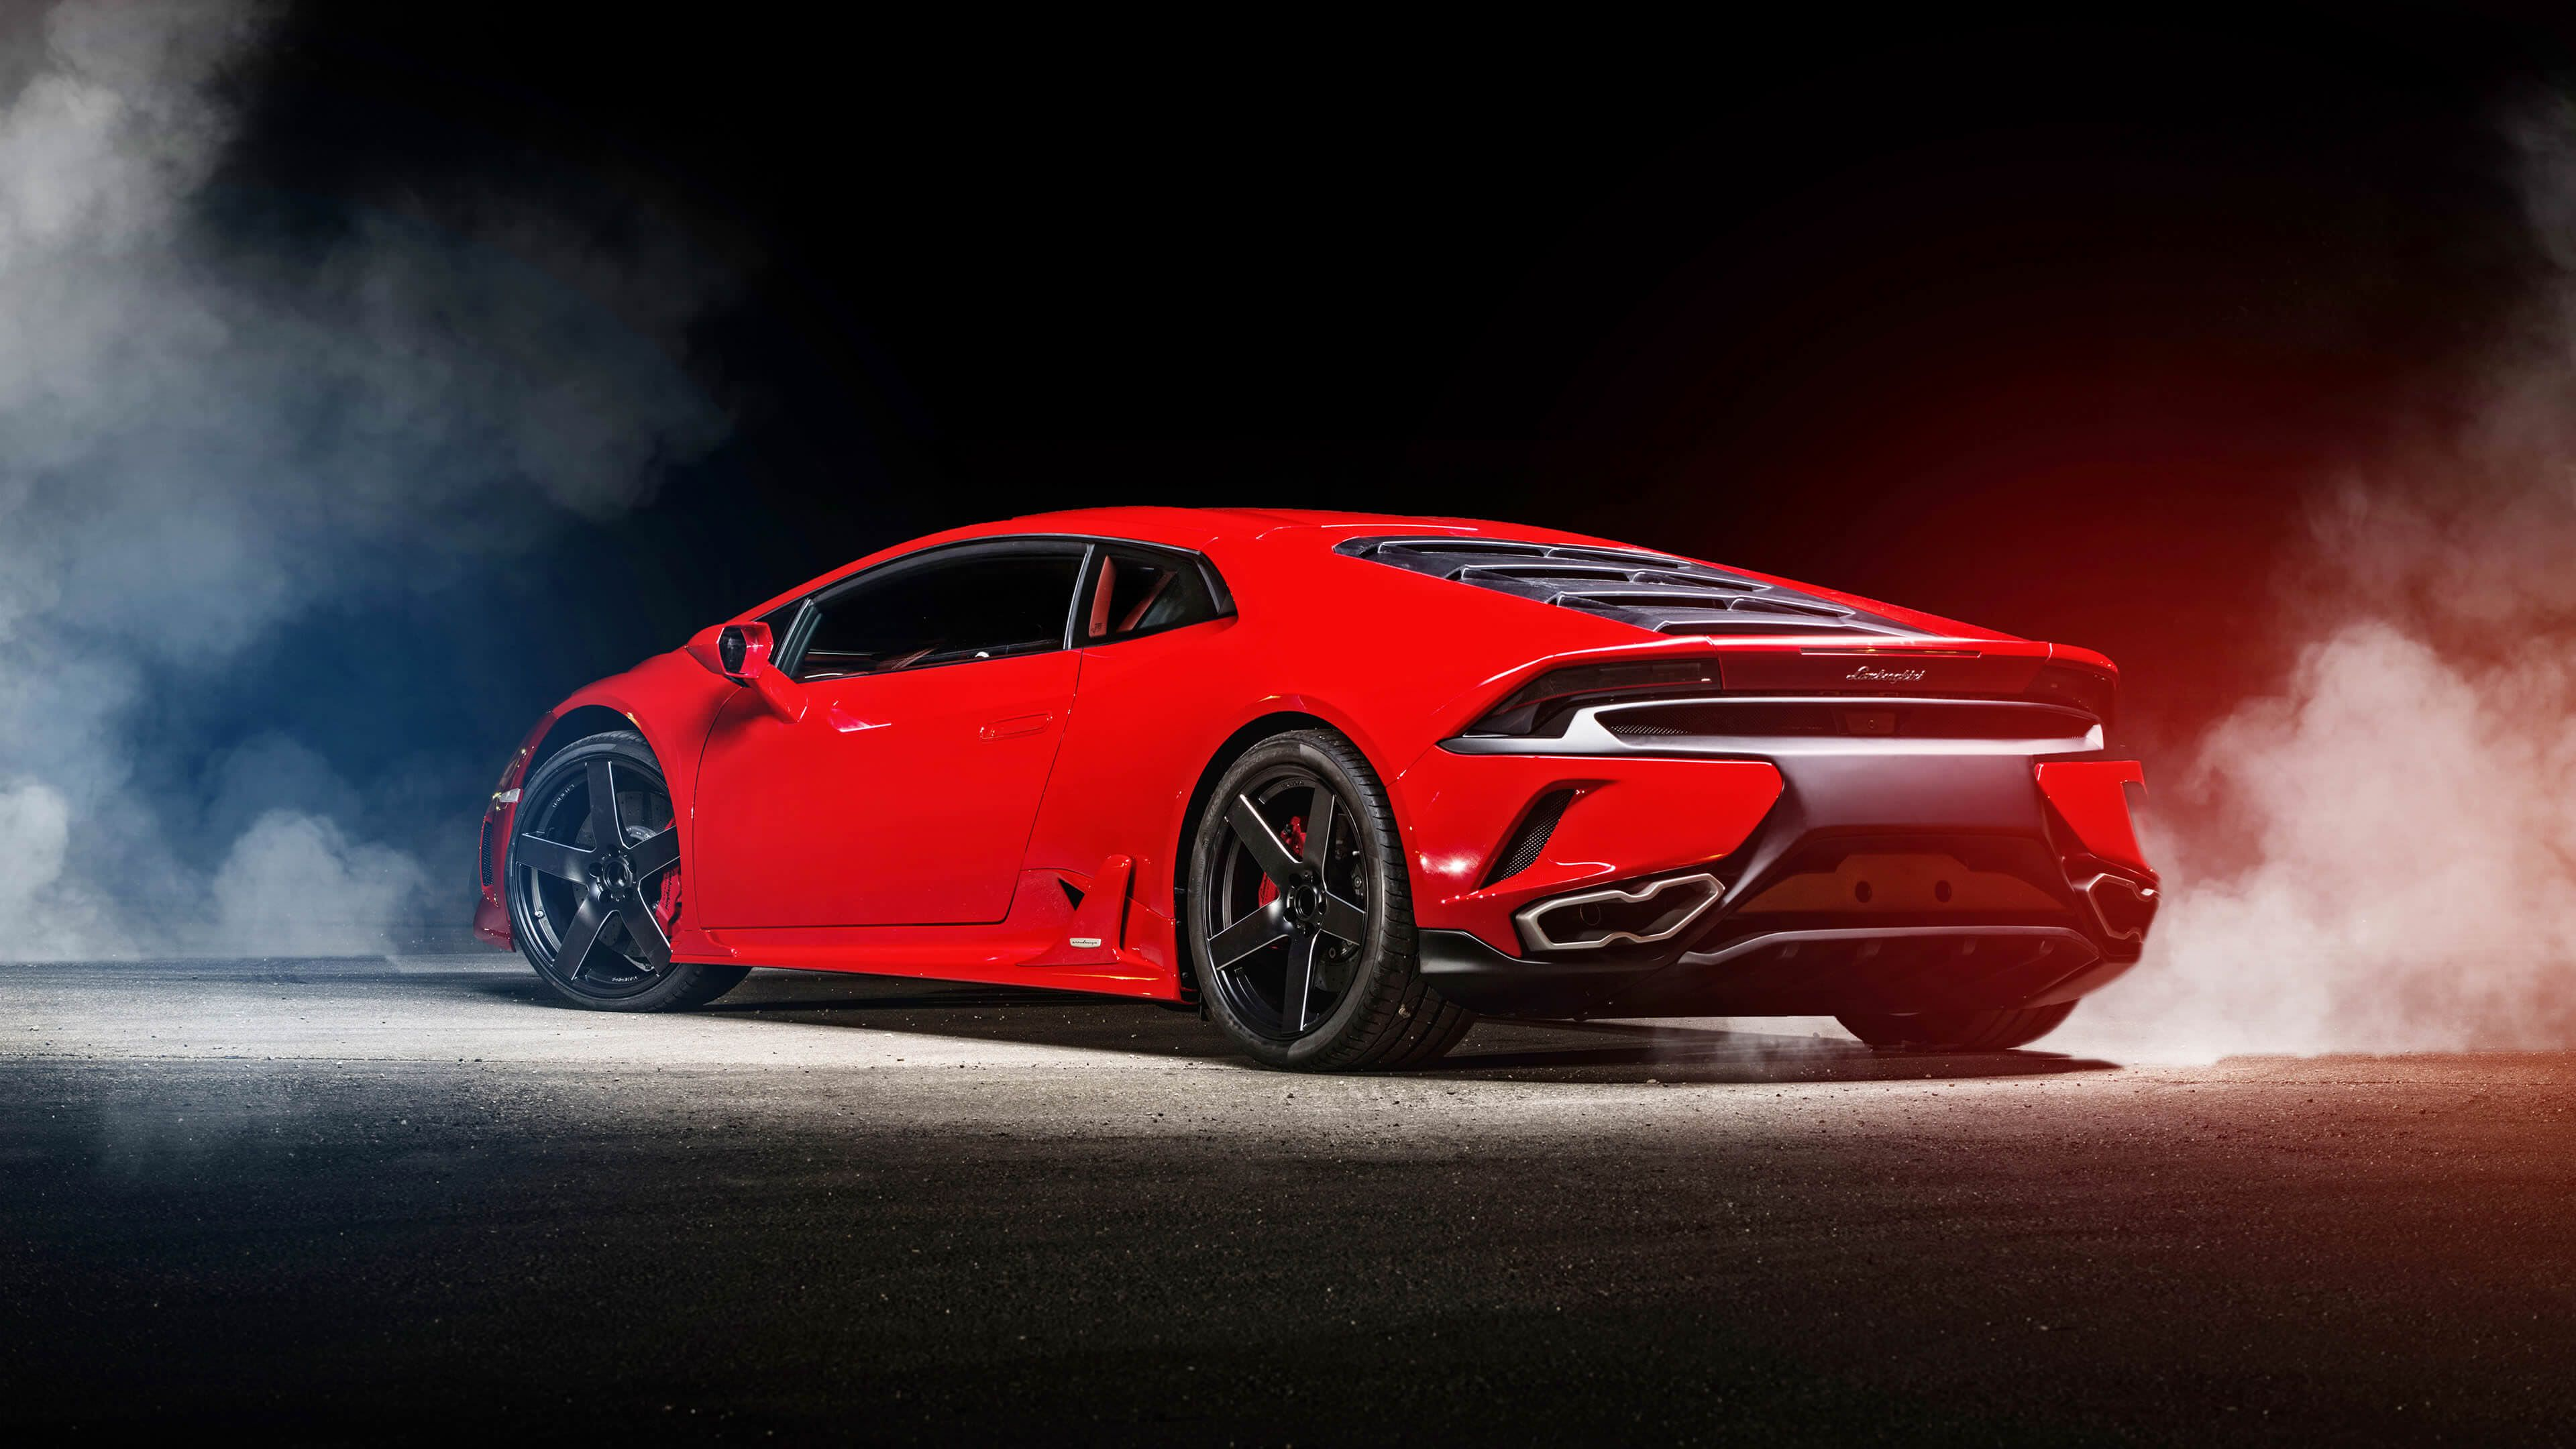 Lamborghini Huracan 4k Lamborghini Wallpapers Lamborghini Huracan Wallpapers Hd Wallpapers Cars Wallpapers Lamborghini Huracan Red Lamborghini Lamborghini